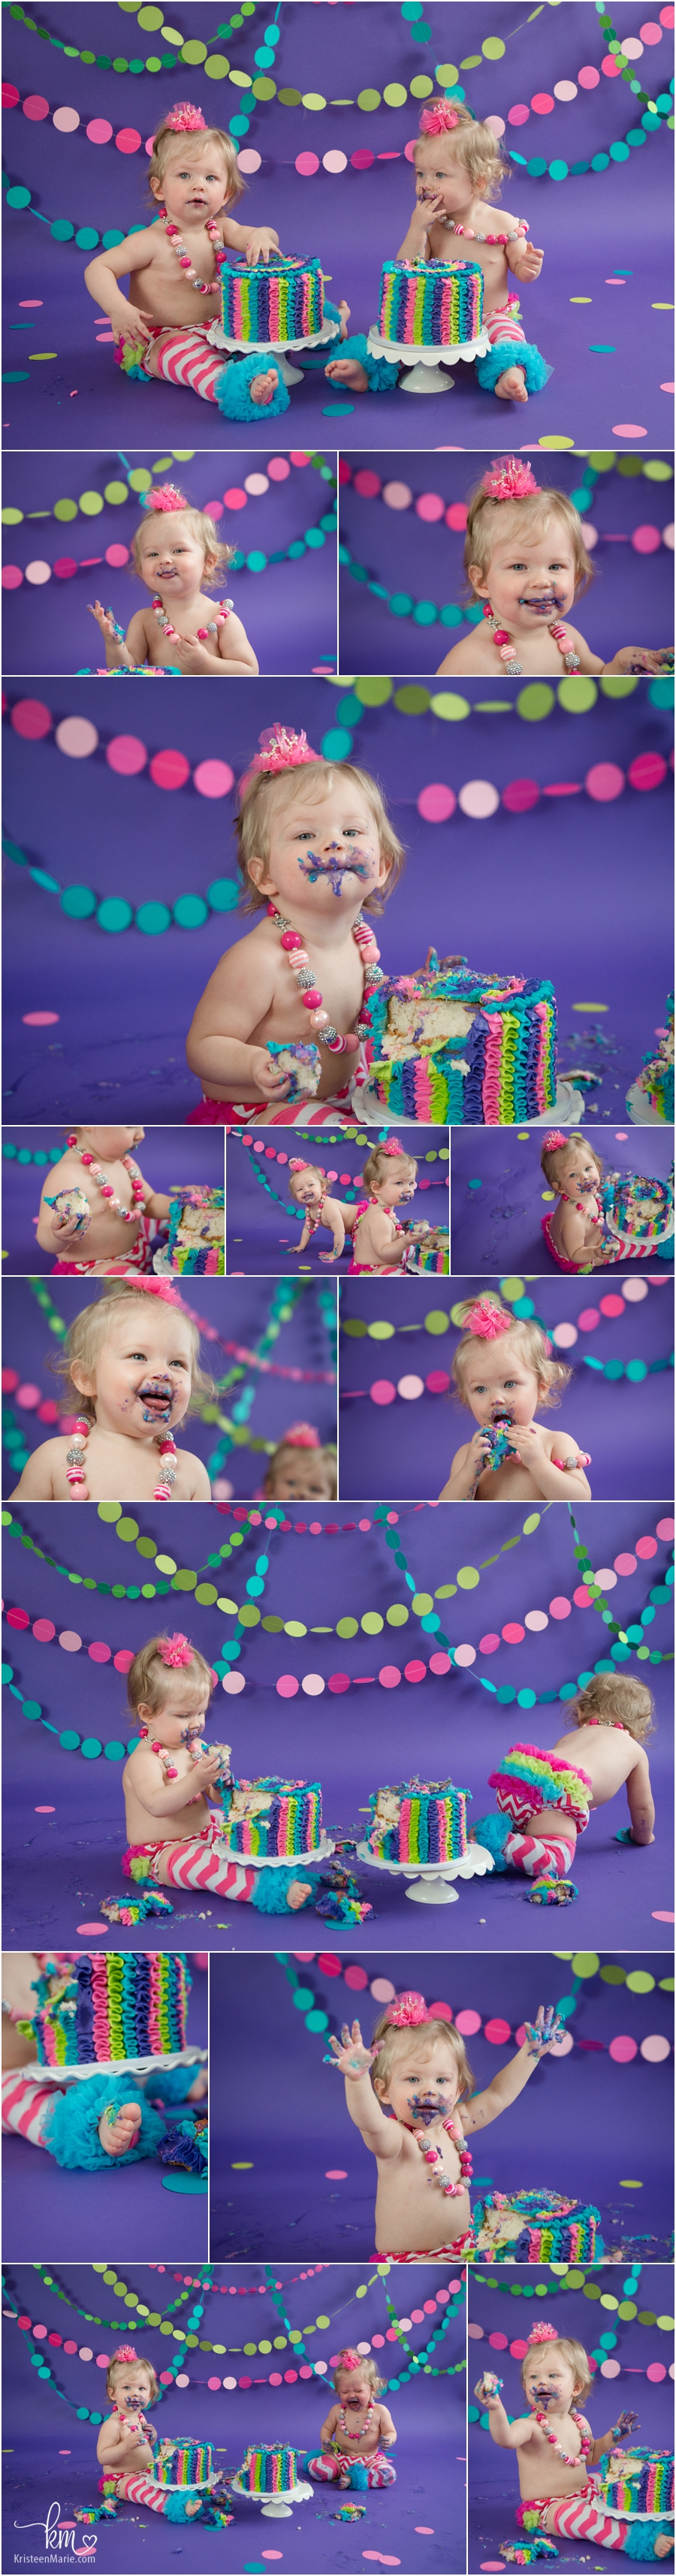 twin girls rainbow cake smash session - neon colors - hot pink, lime green, purple and teal